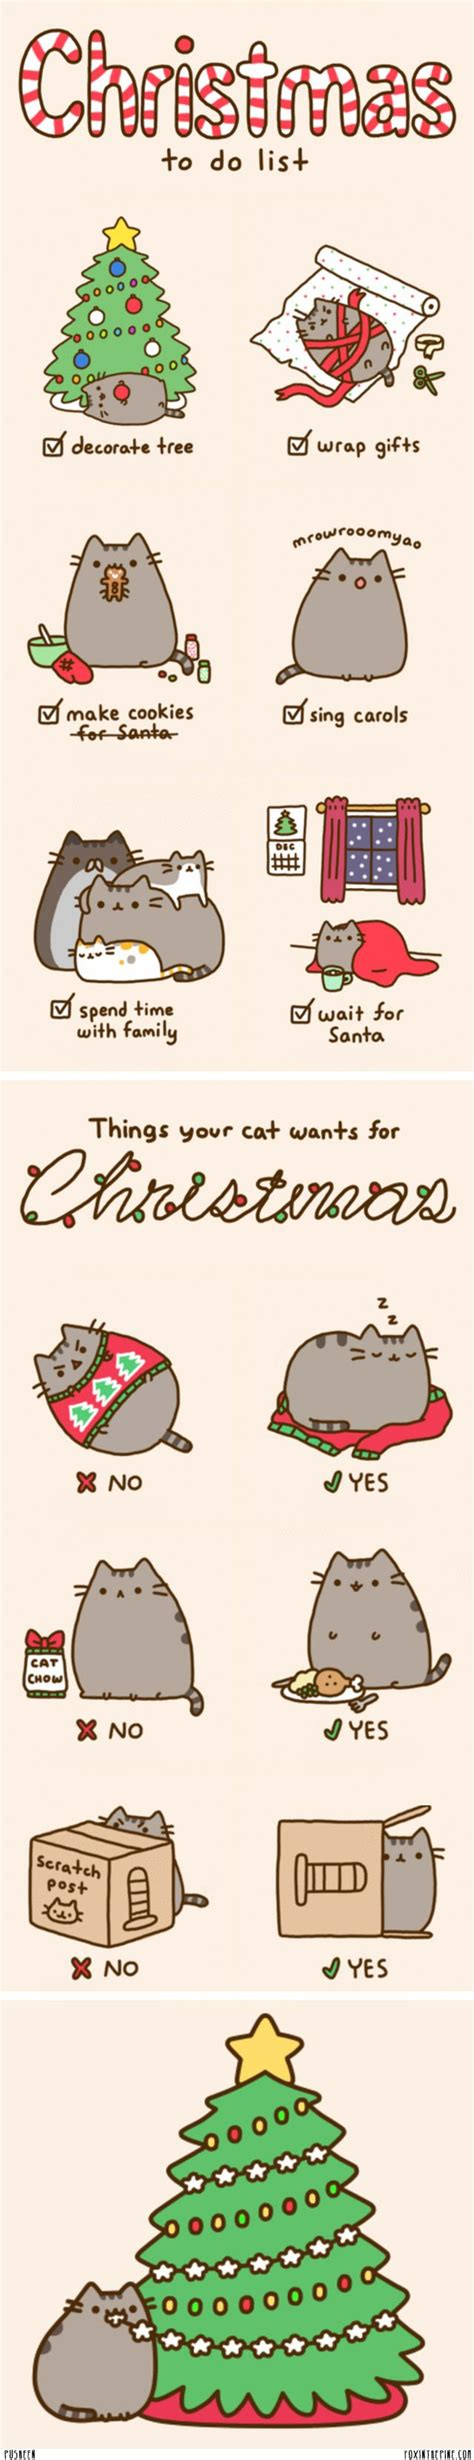 pusheen cat christmas to do list 17 best images about pusheen kitty on pinterest cats